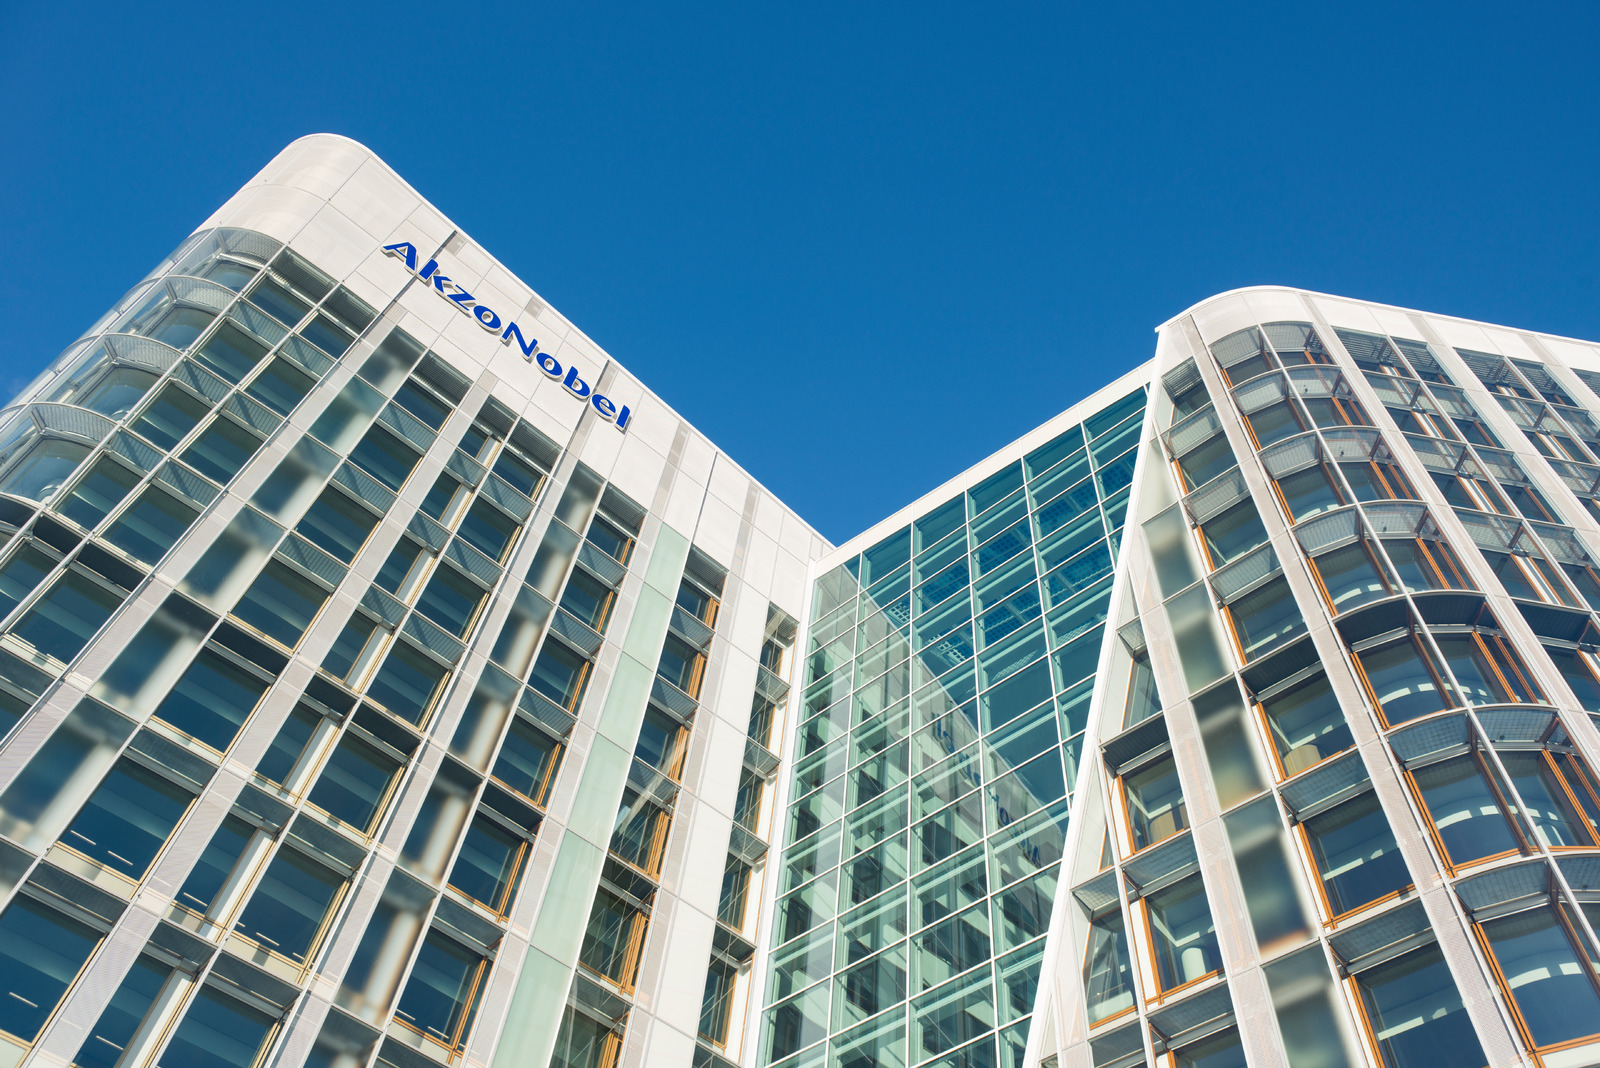 AkzoNobel target share price set to 97 by UBS